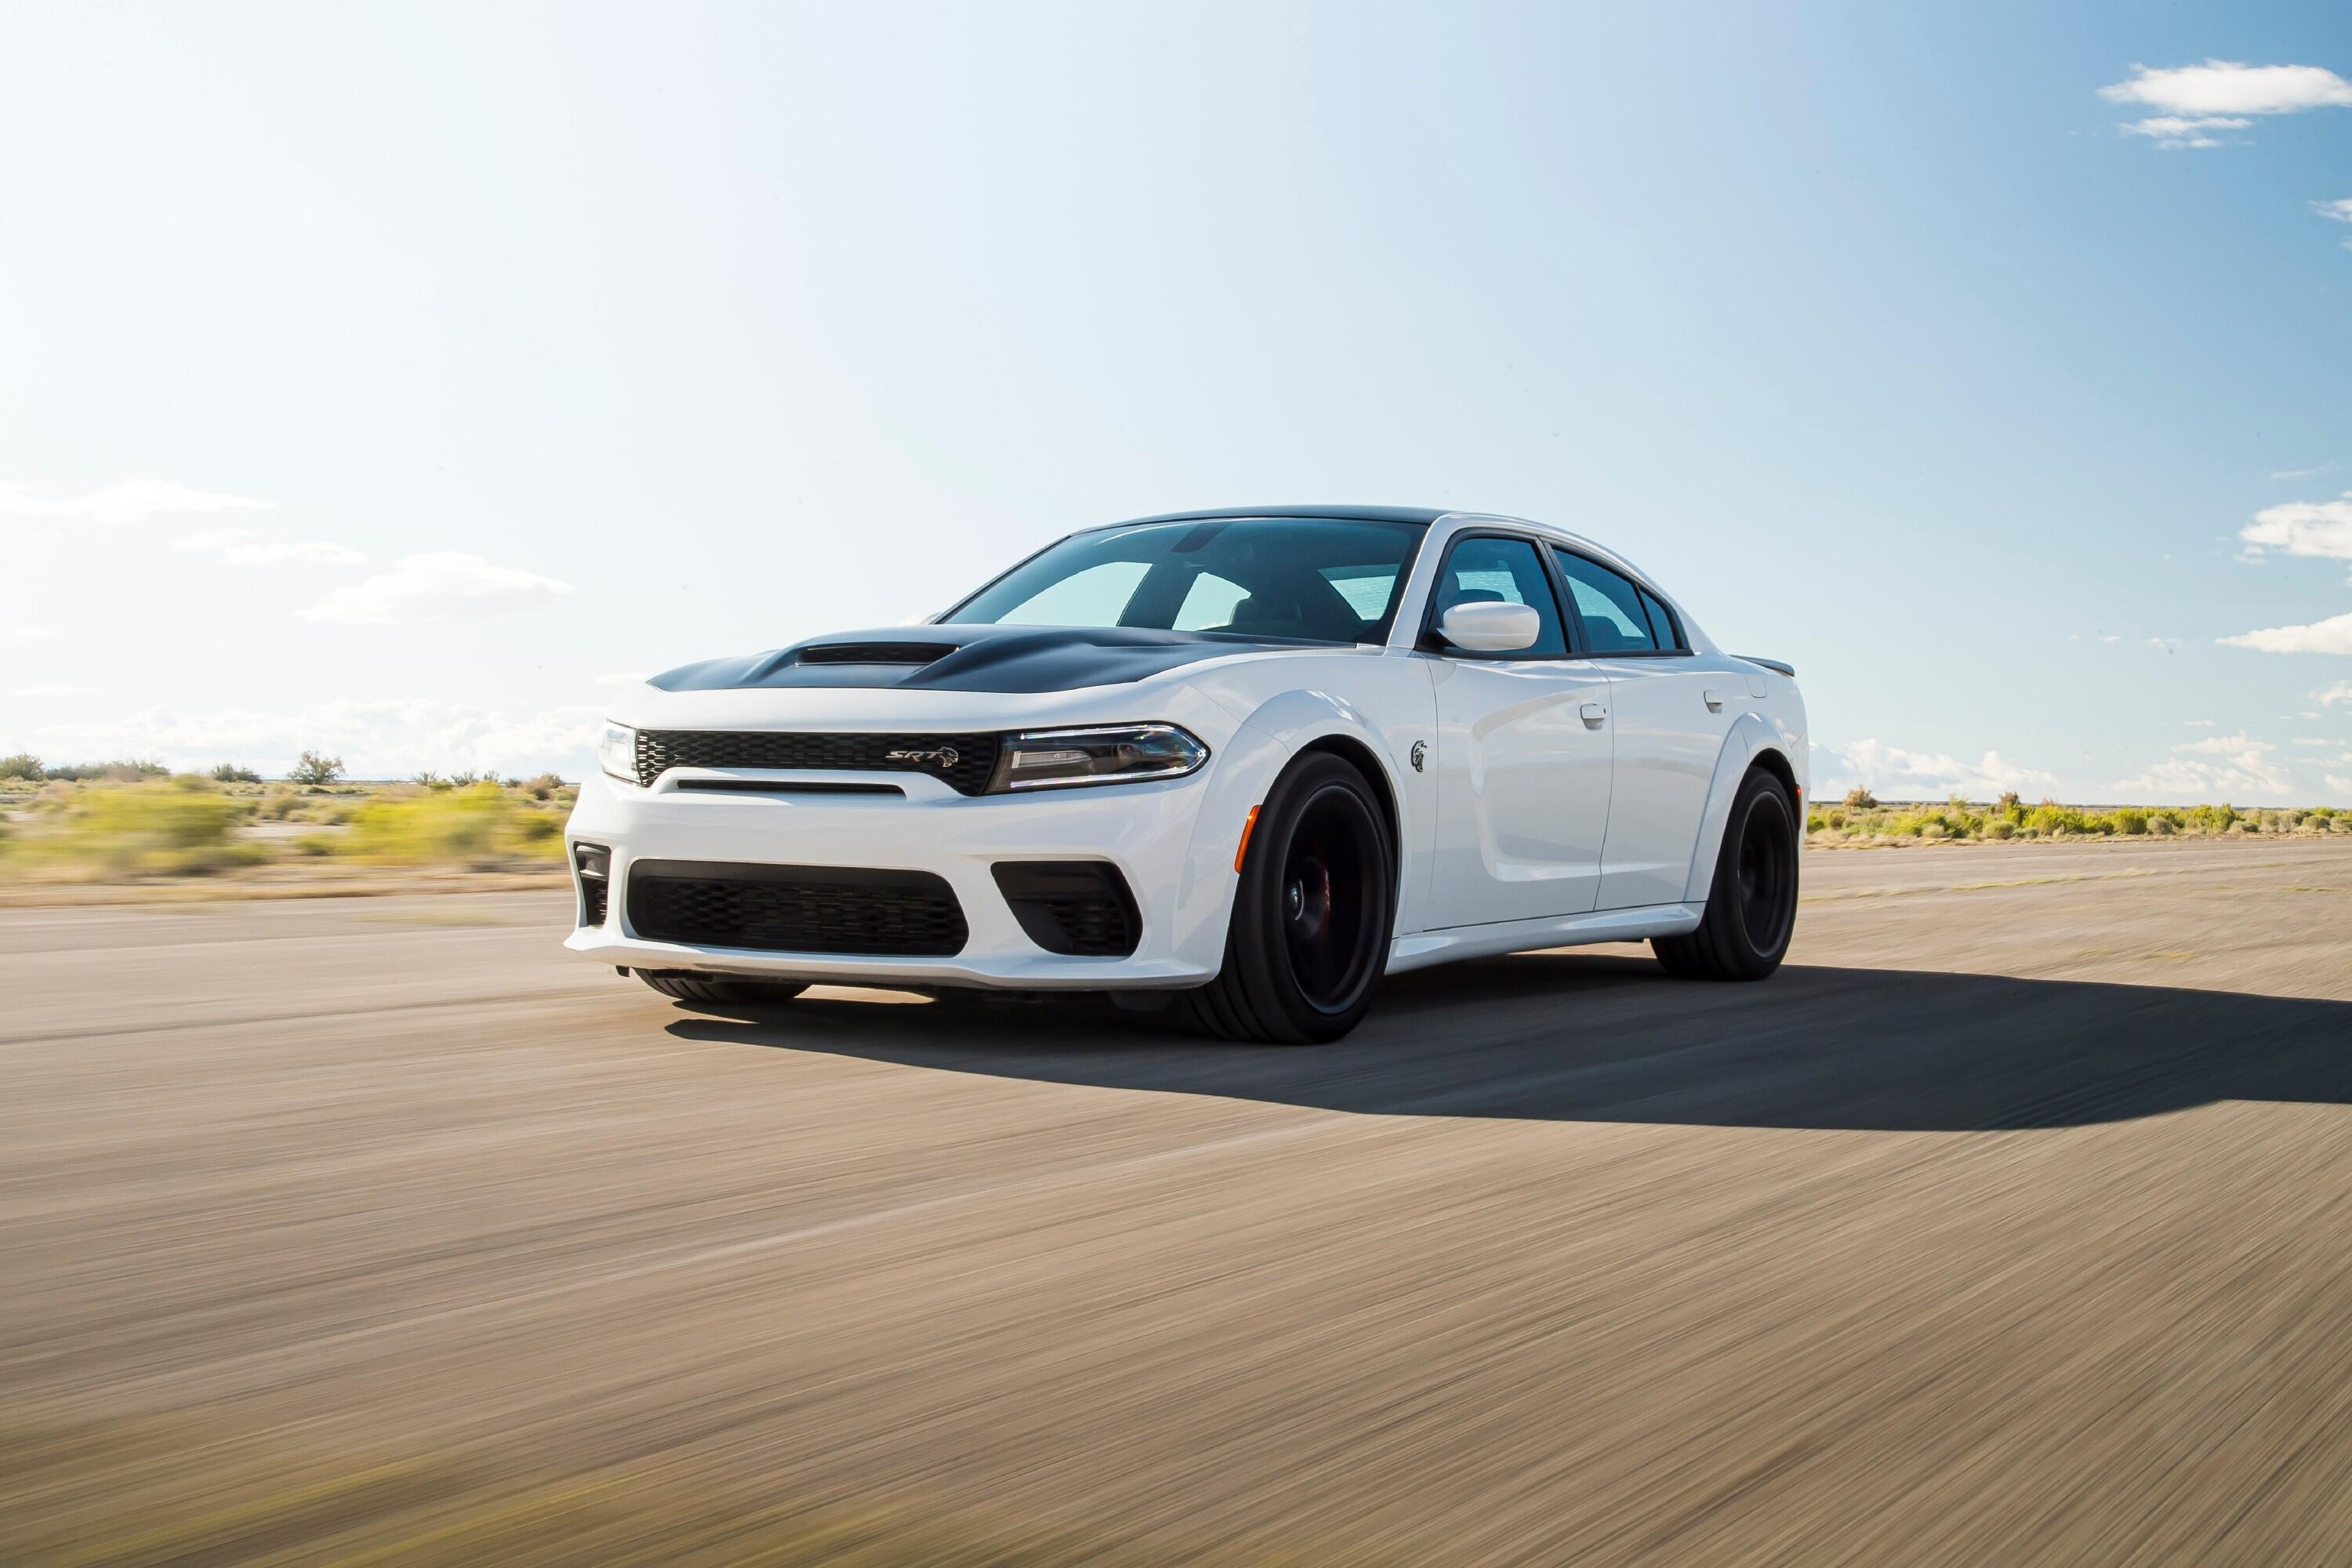 2021-dodge-charger-redeye-031